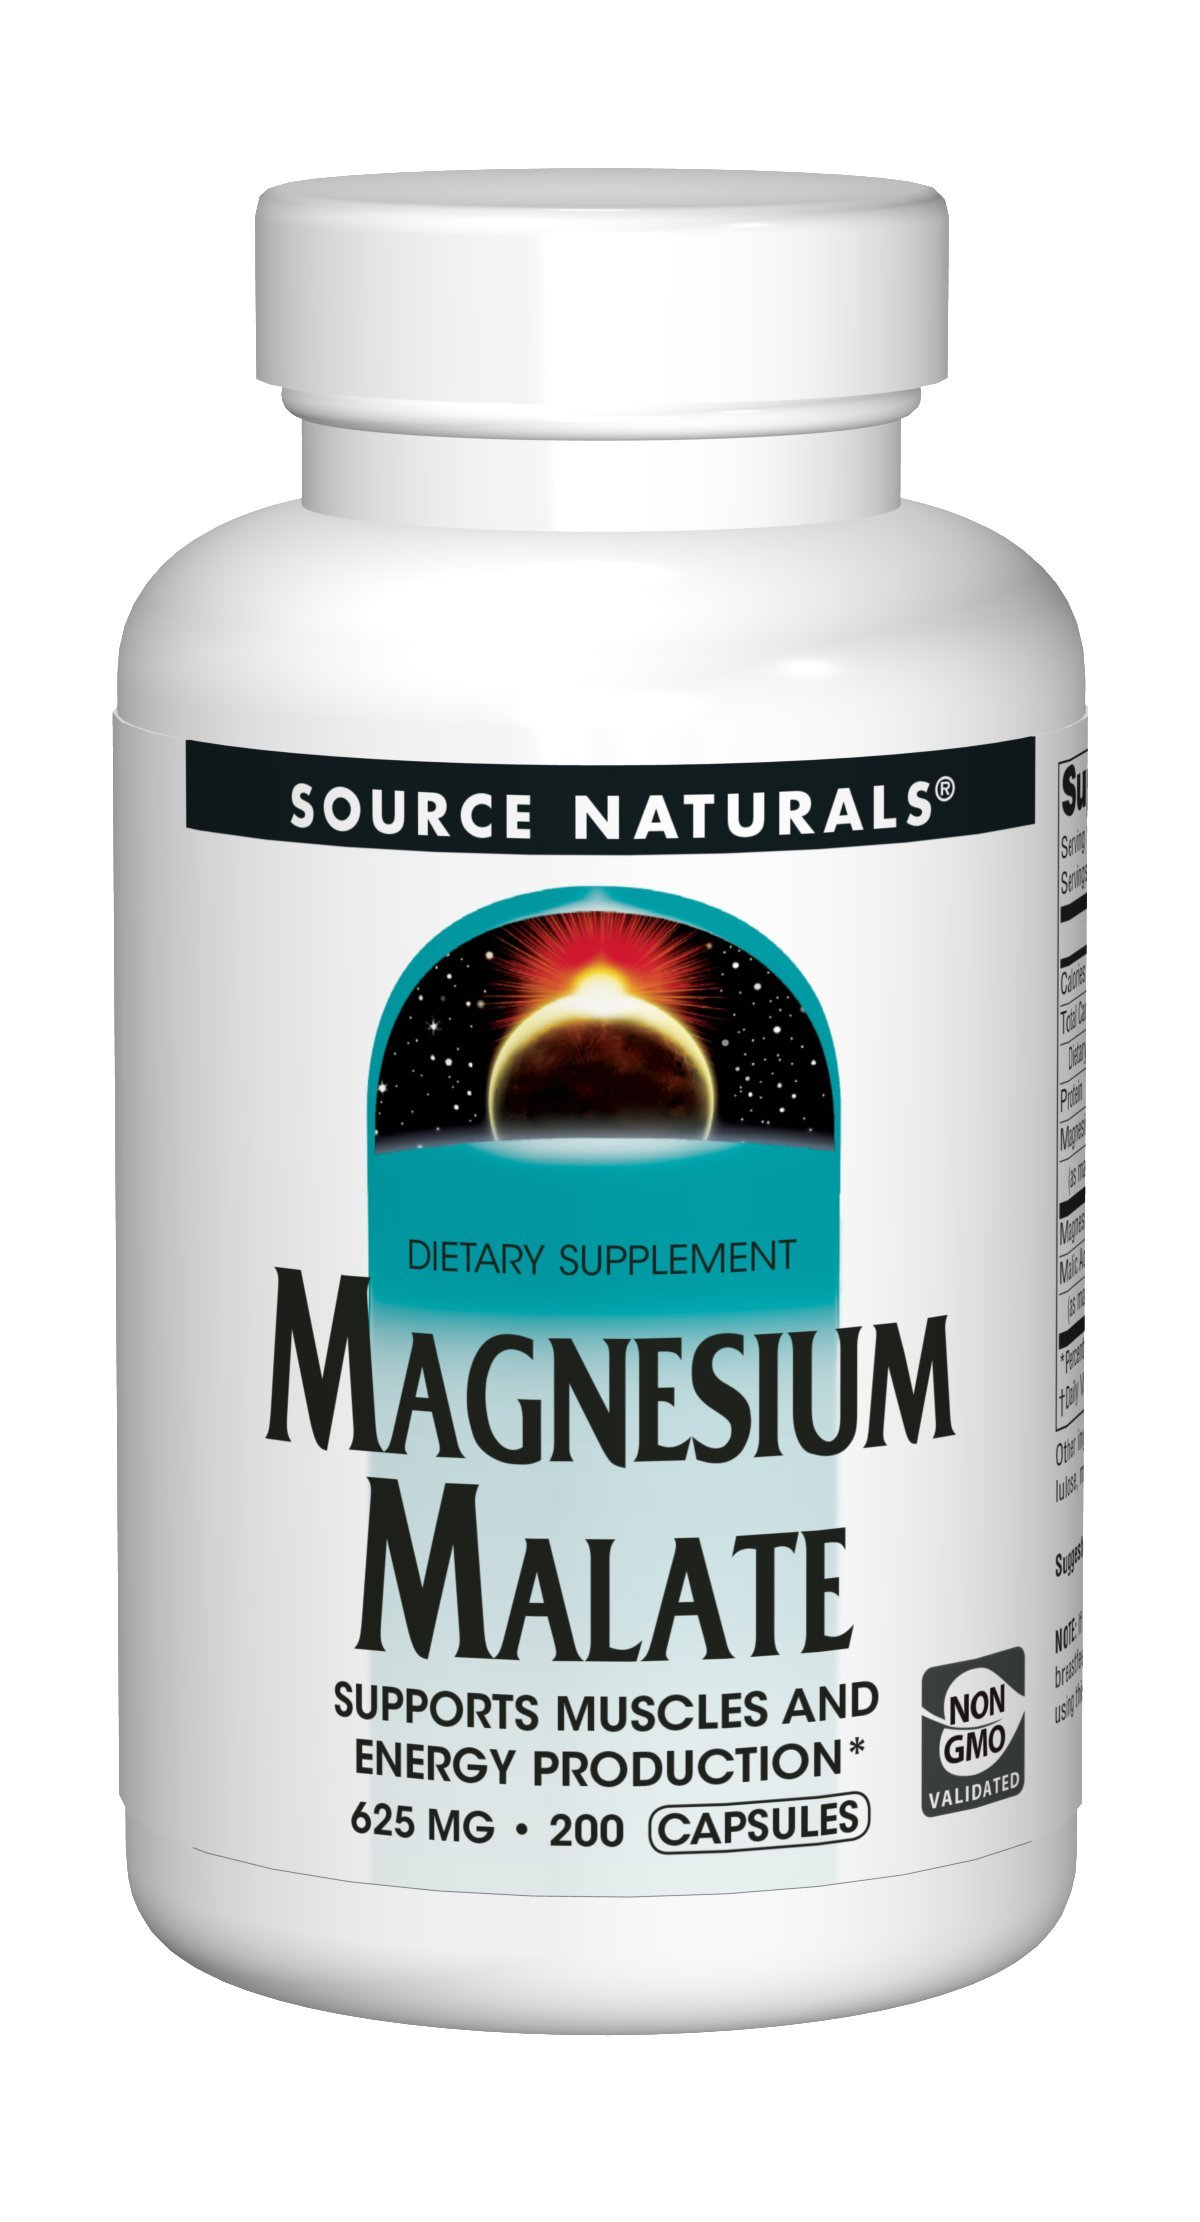 Source Naturals Magnesium Malate 625mg Supplement Essential, Bio-Available Magnesium Malic Acid Supplement - 200 Capsules